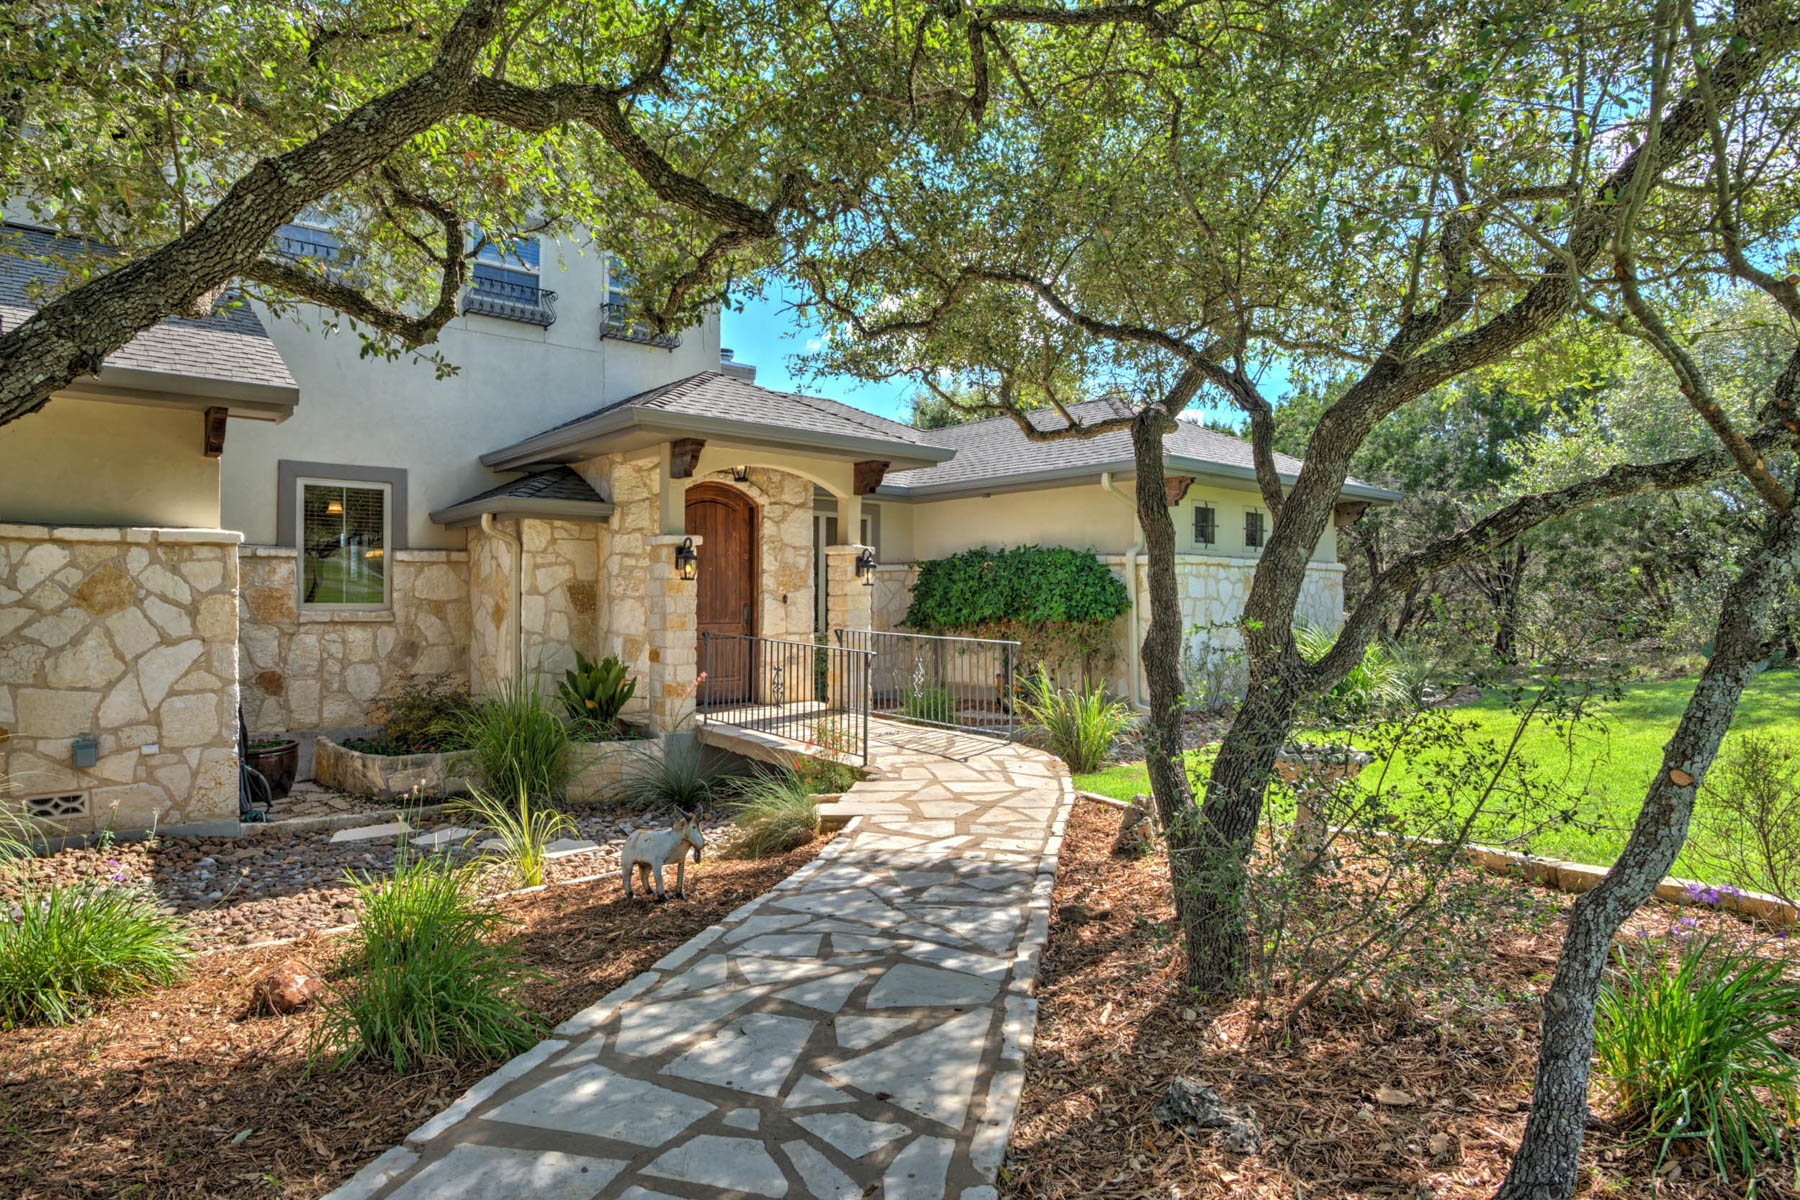 Casa Unifamiliar por un Venta en Picturesque Texas Hill Country Views Abound 263 Westin Hills New Braunfels, Texas 78132 Estados Unidos